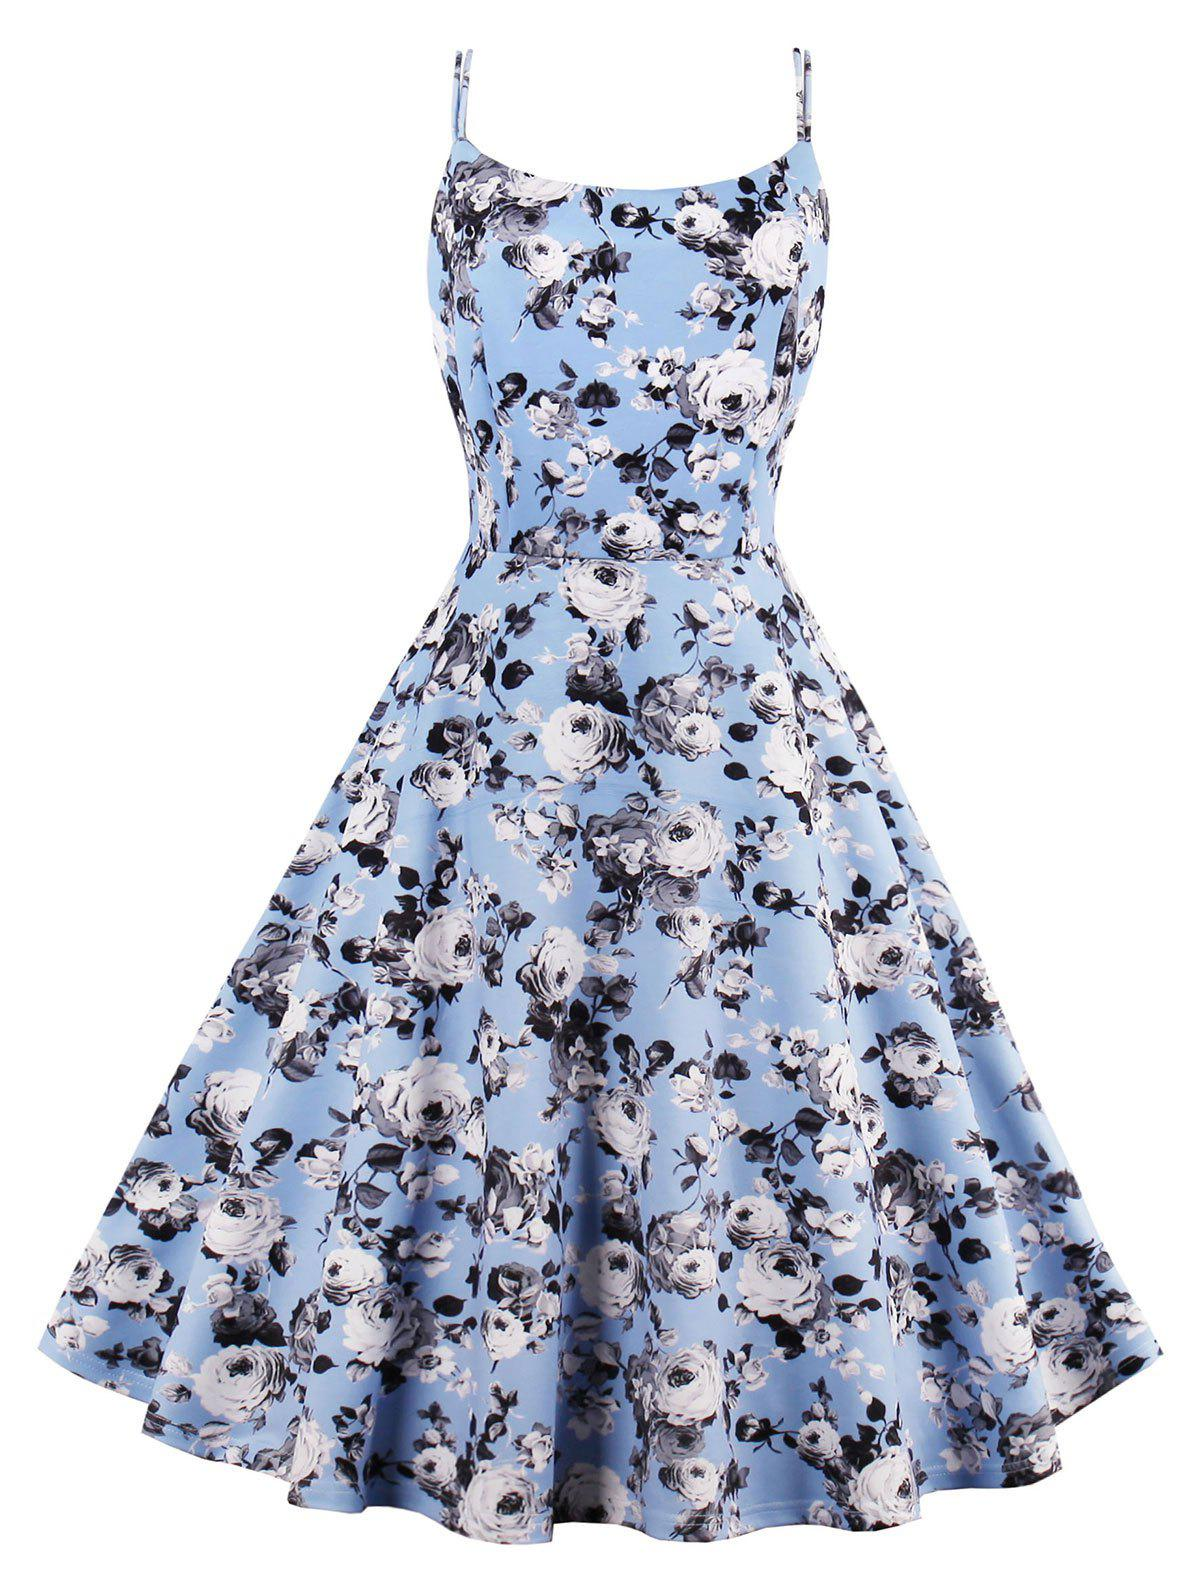 Roses Printed High Waist Flare Sun Dress - LIGHT BLUE 2XL